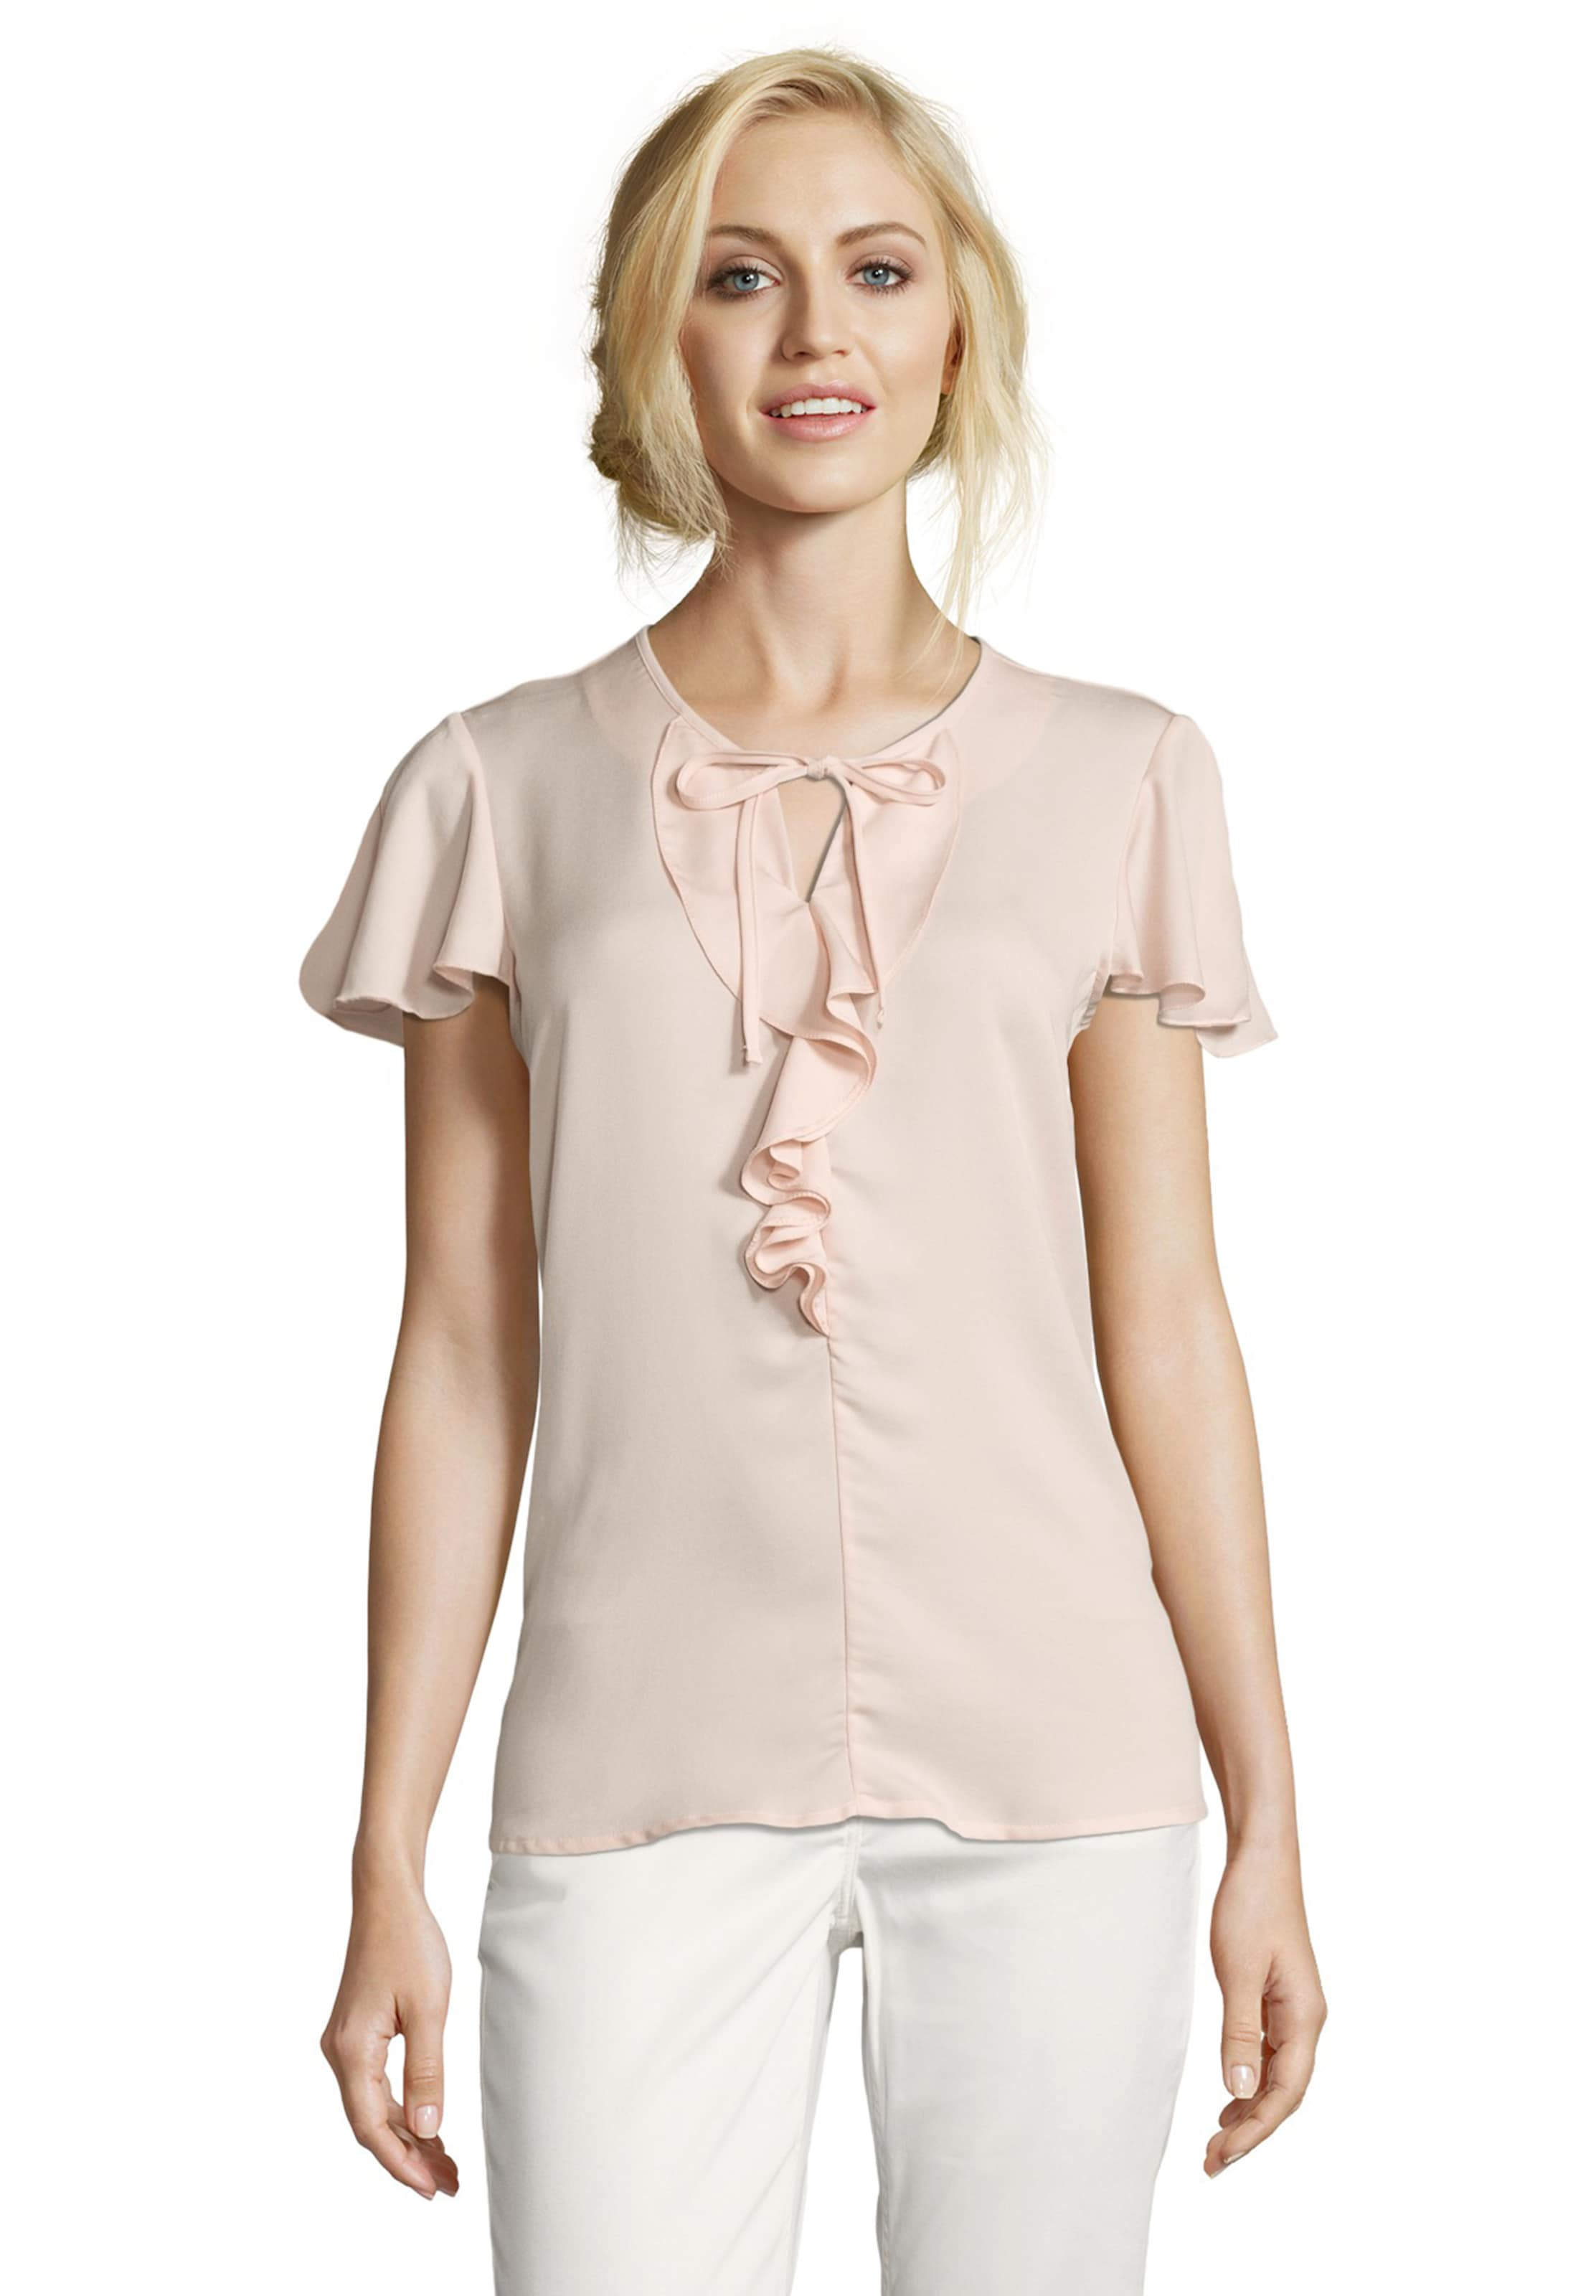 Betty Blusenshirt Betty In Barclay Puder Barclay Blusenshirt oxrdCBQeW